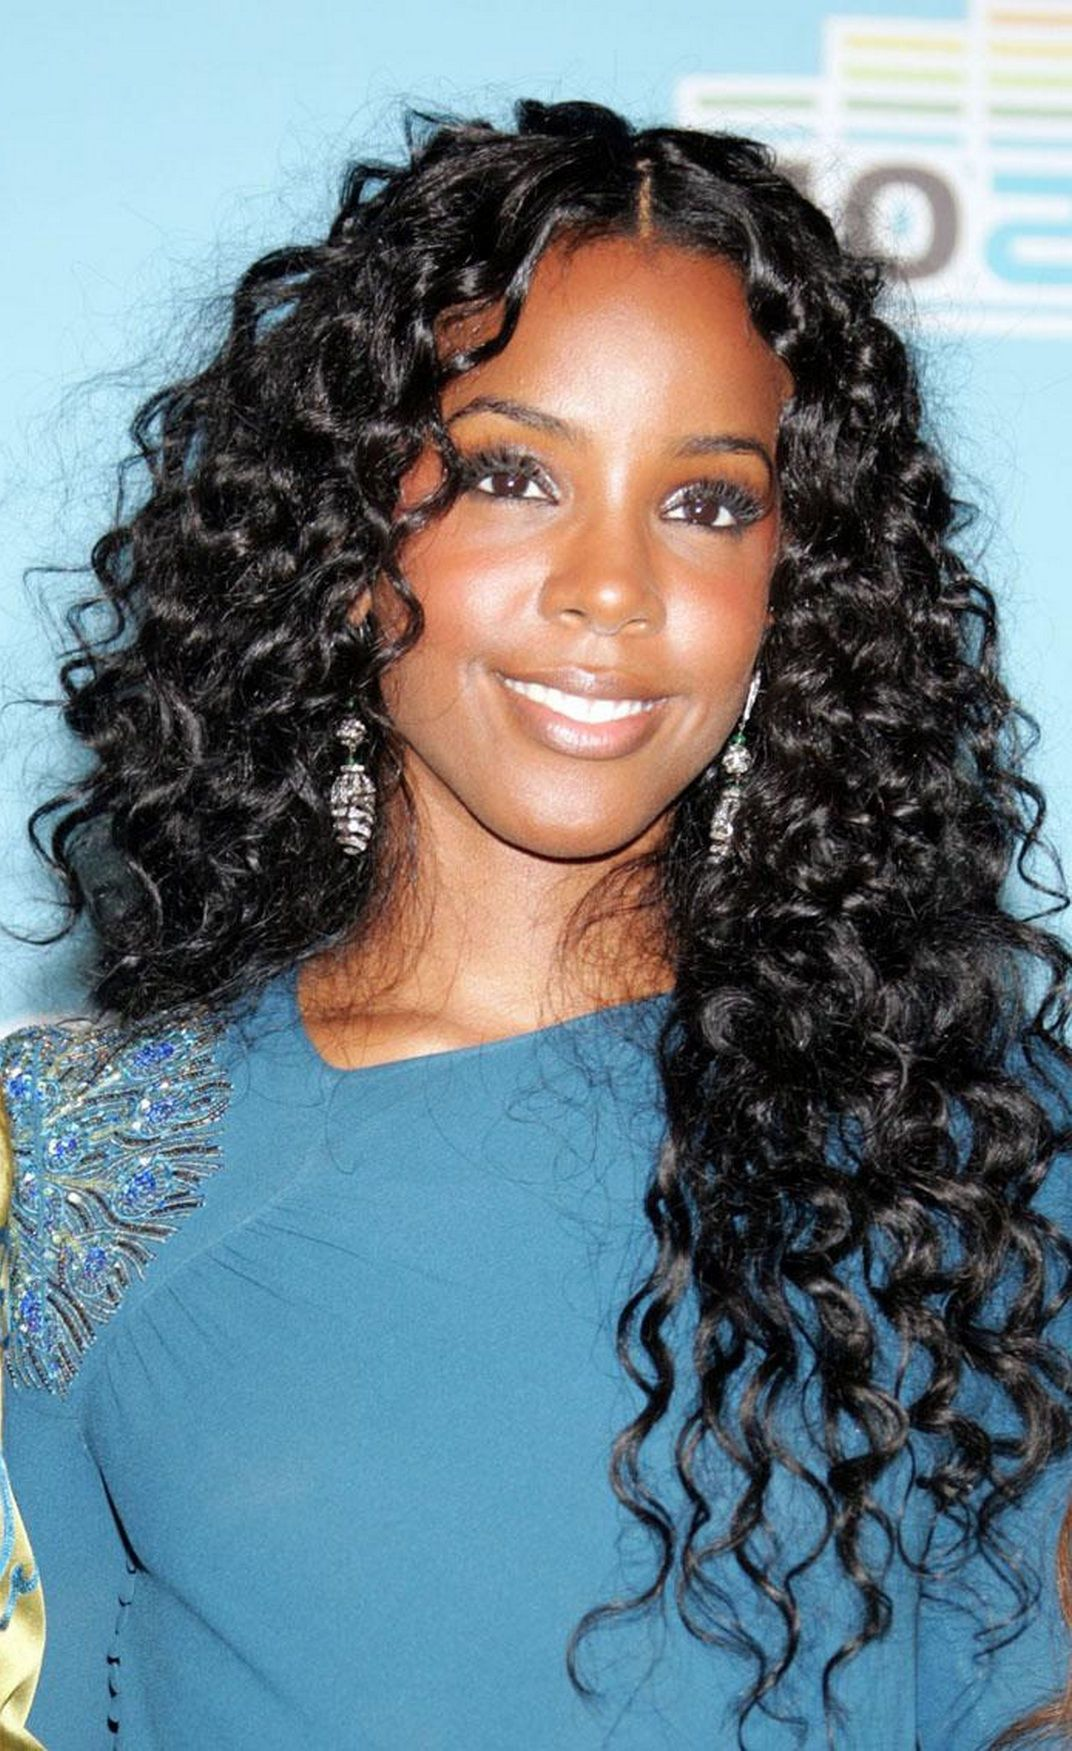 Nice Black Curly Weave Hairstyles For Black Women Sevvven Wavy Weave Hairstyles Curly Weave Hairstyles Black Curly Weave Hairstyles